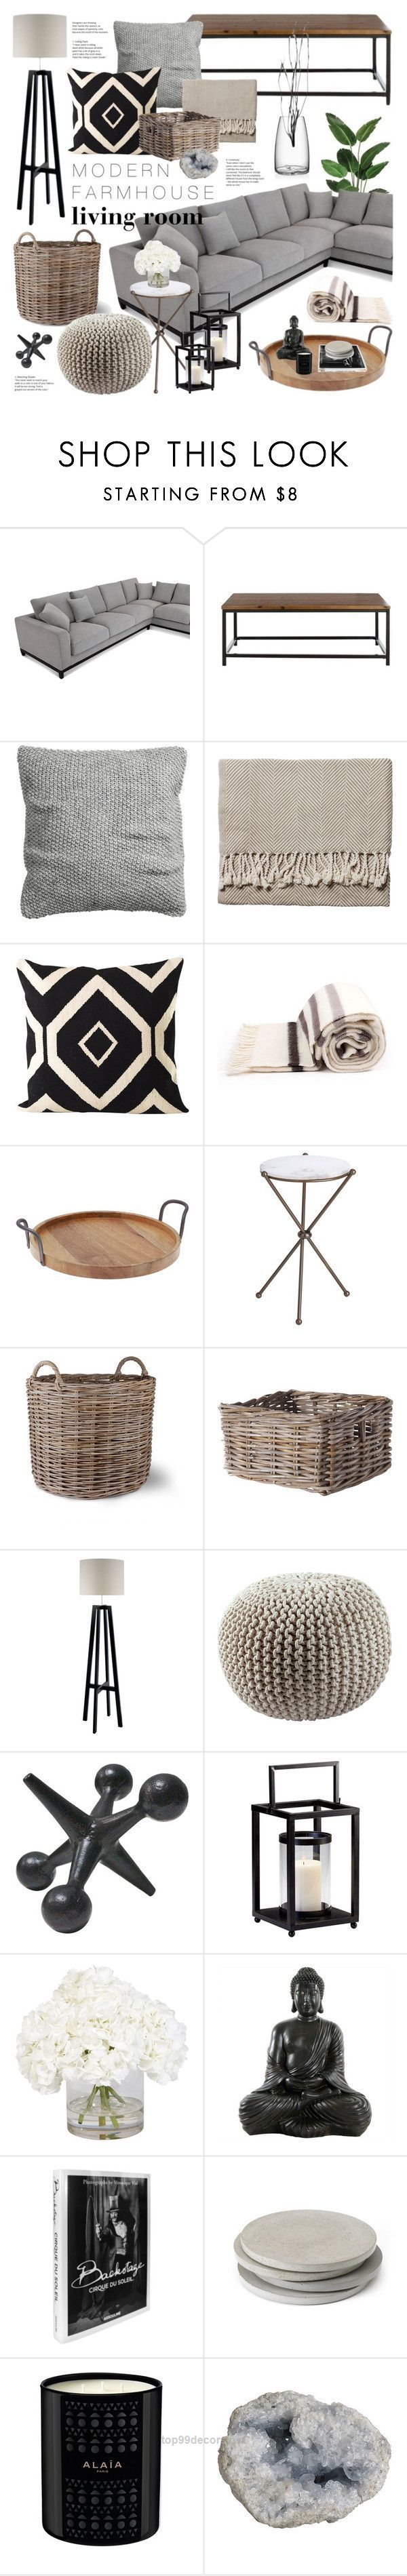 """Insane """"Modern Farmhouse Living Room"""" by emmy liked on Polyvore featuring interior, interiors, interior design, home, home decor, interior decorating, H&M, Serena & Lily, Hudson's Bay Company and Thirstystone The post """"Modern Farmhouse Living Room"""" by emmy ❤️ liked on .."""